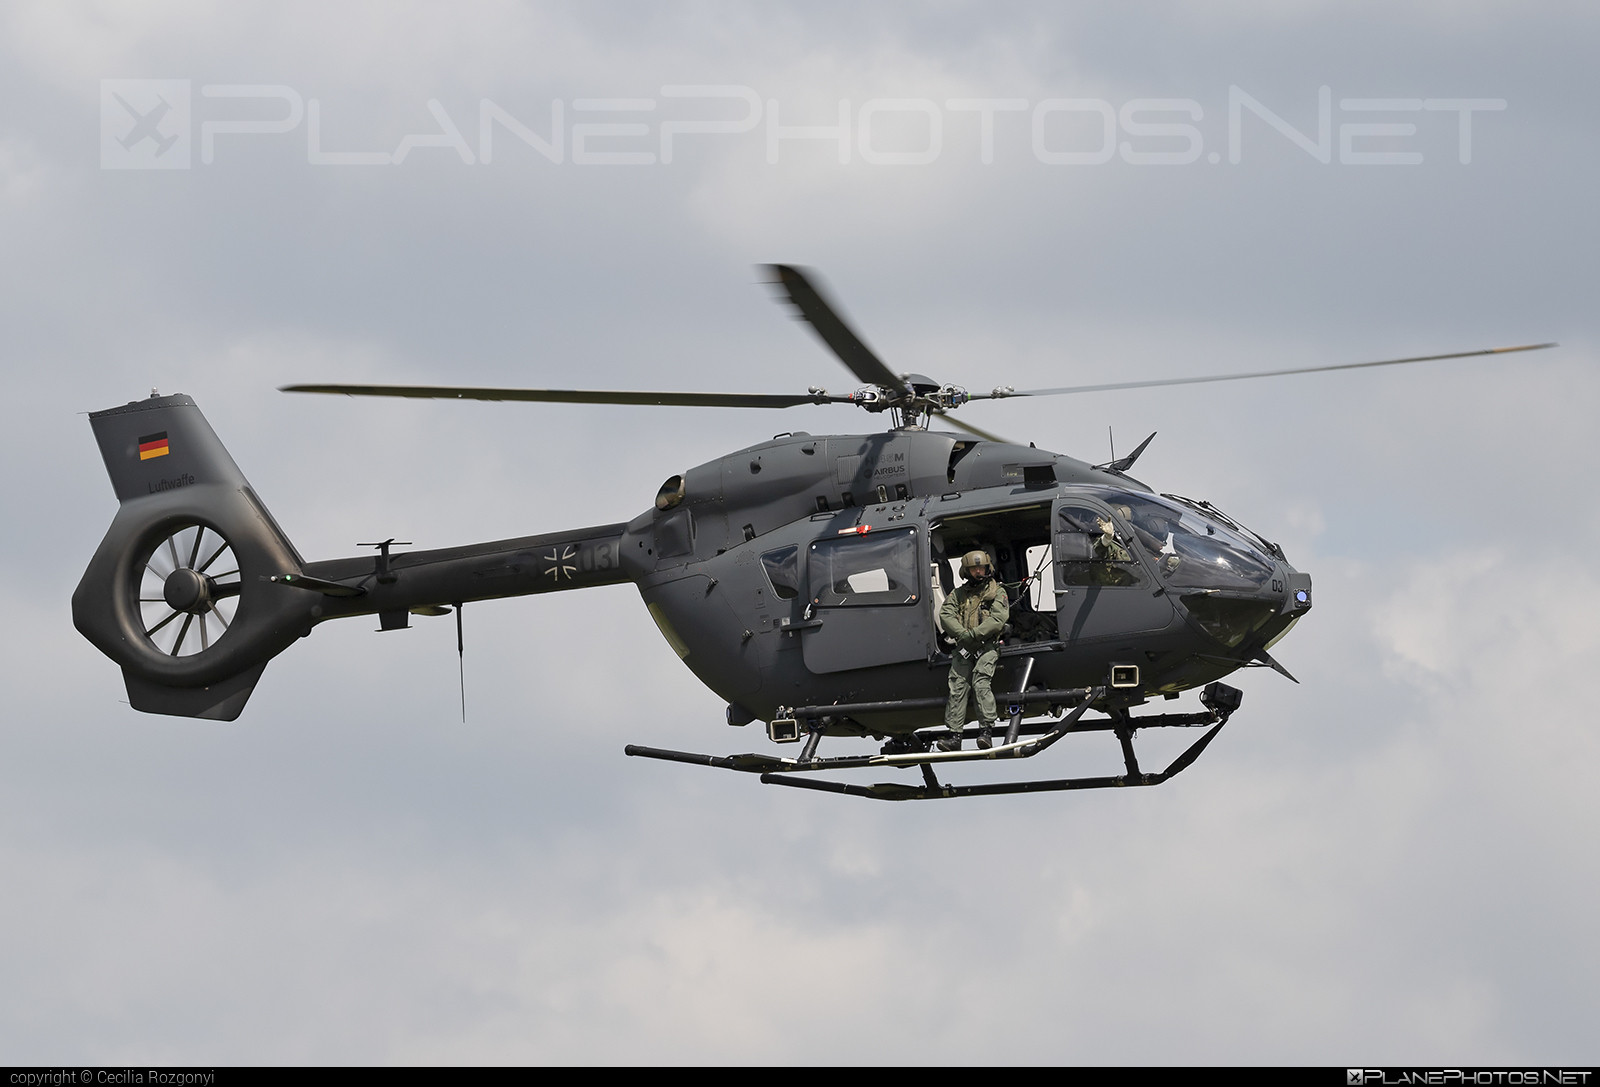 Airbus Helicopters H145M - 76+03 operated by Luftwaffe (German Air Force) #airbushelicopters